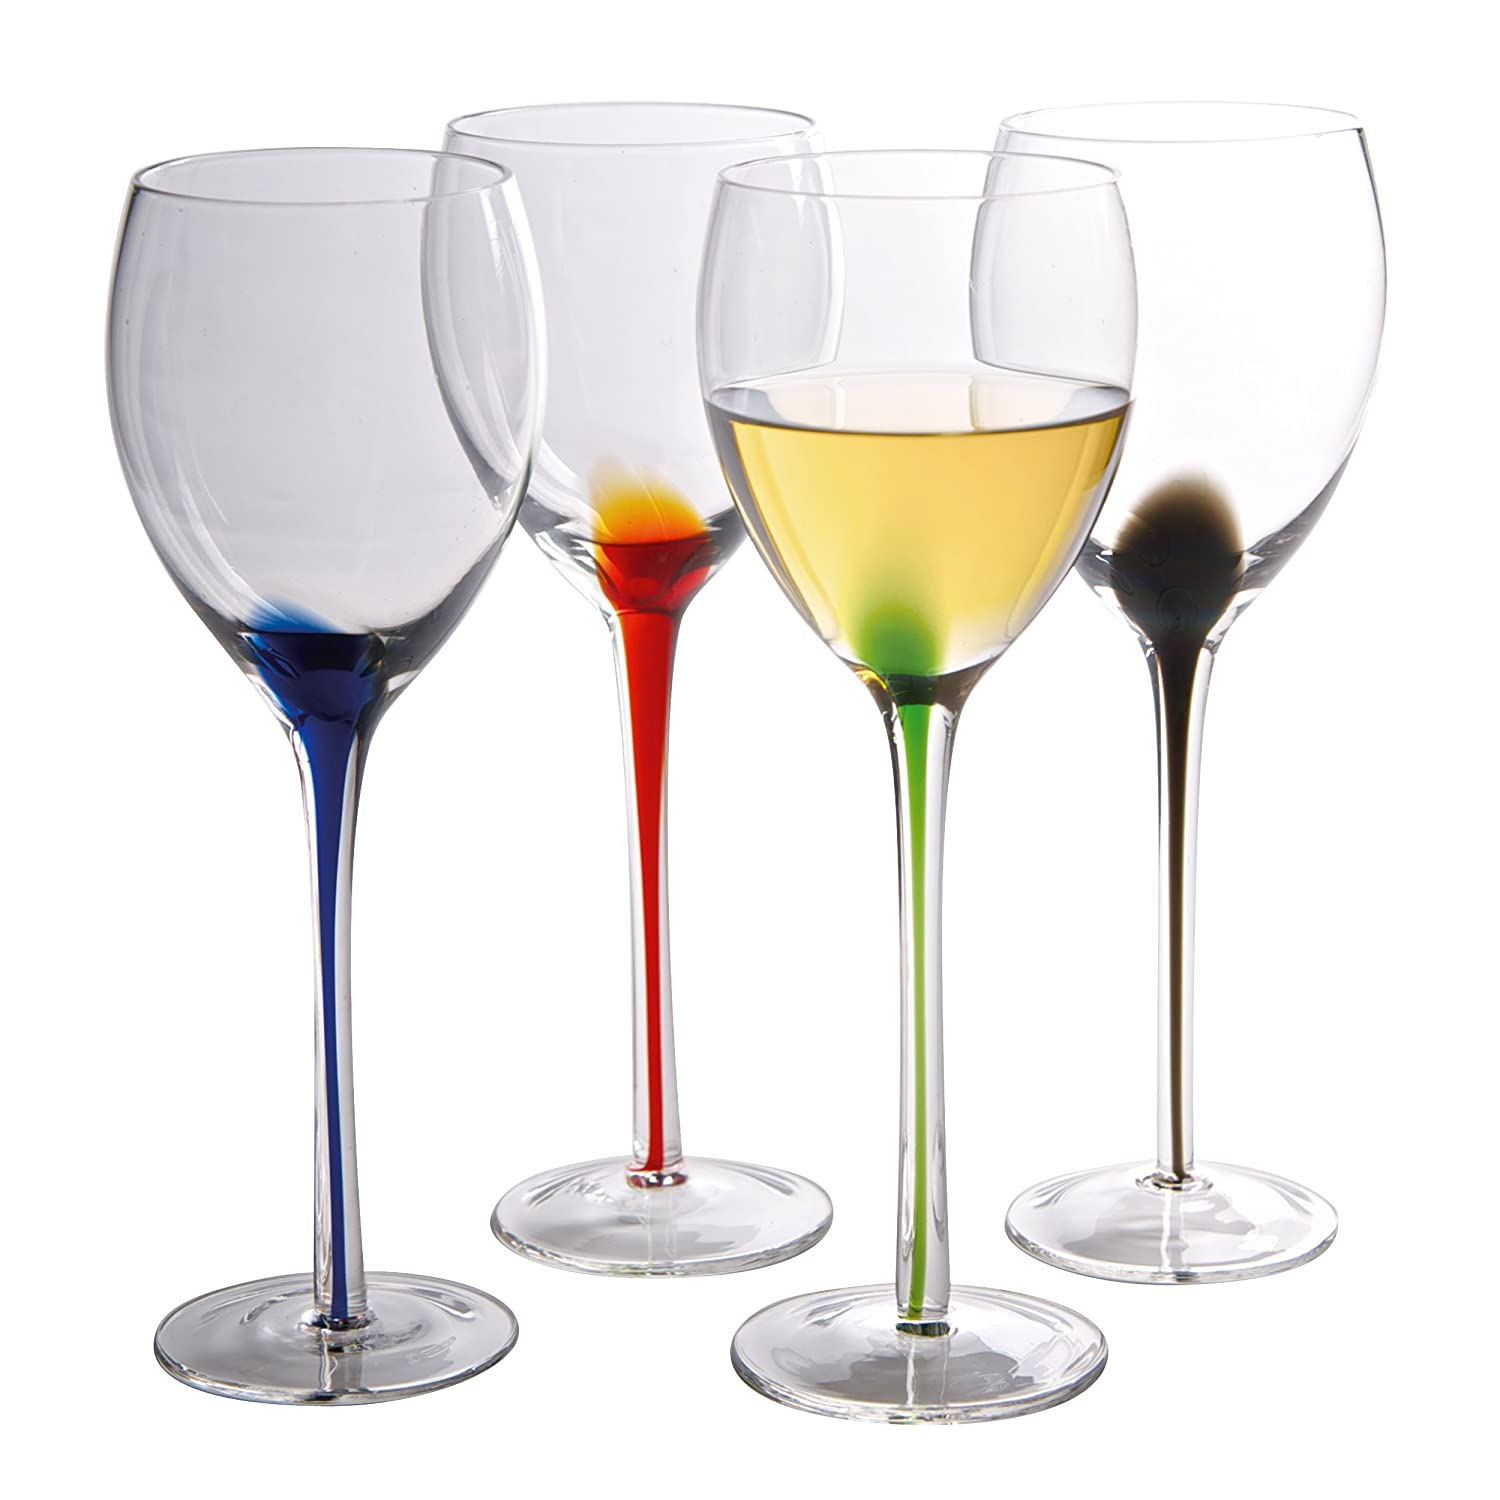 Artland® - The Splash Collection - Wine Glasses, Set of 4, Multi-Colour 60900